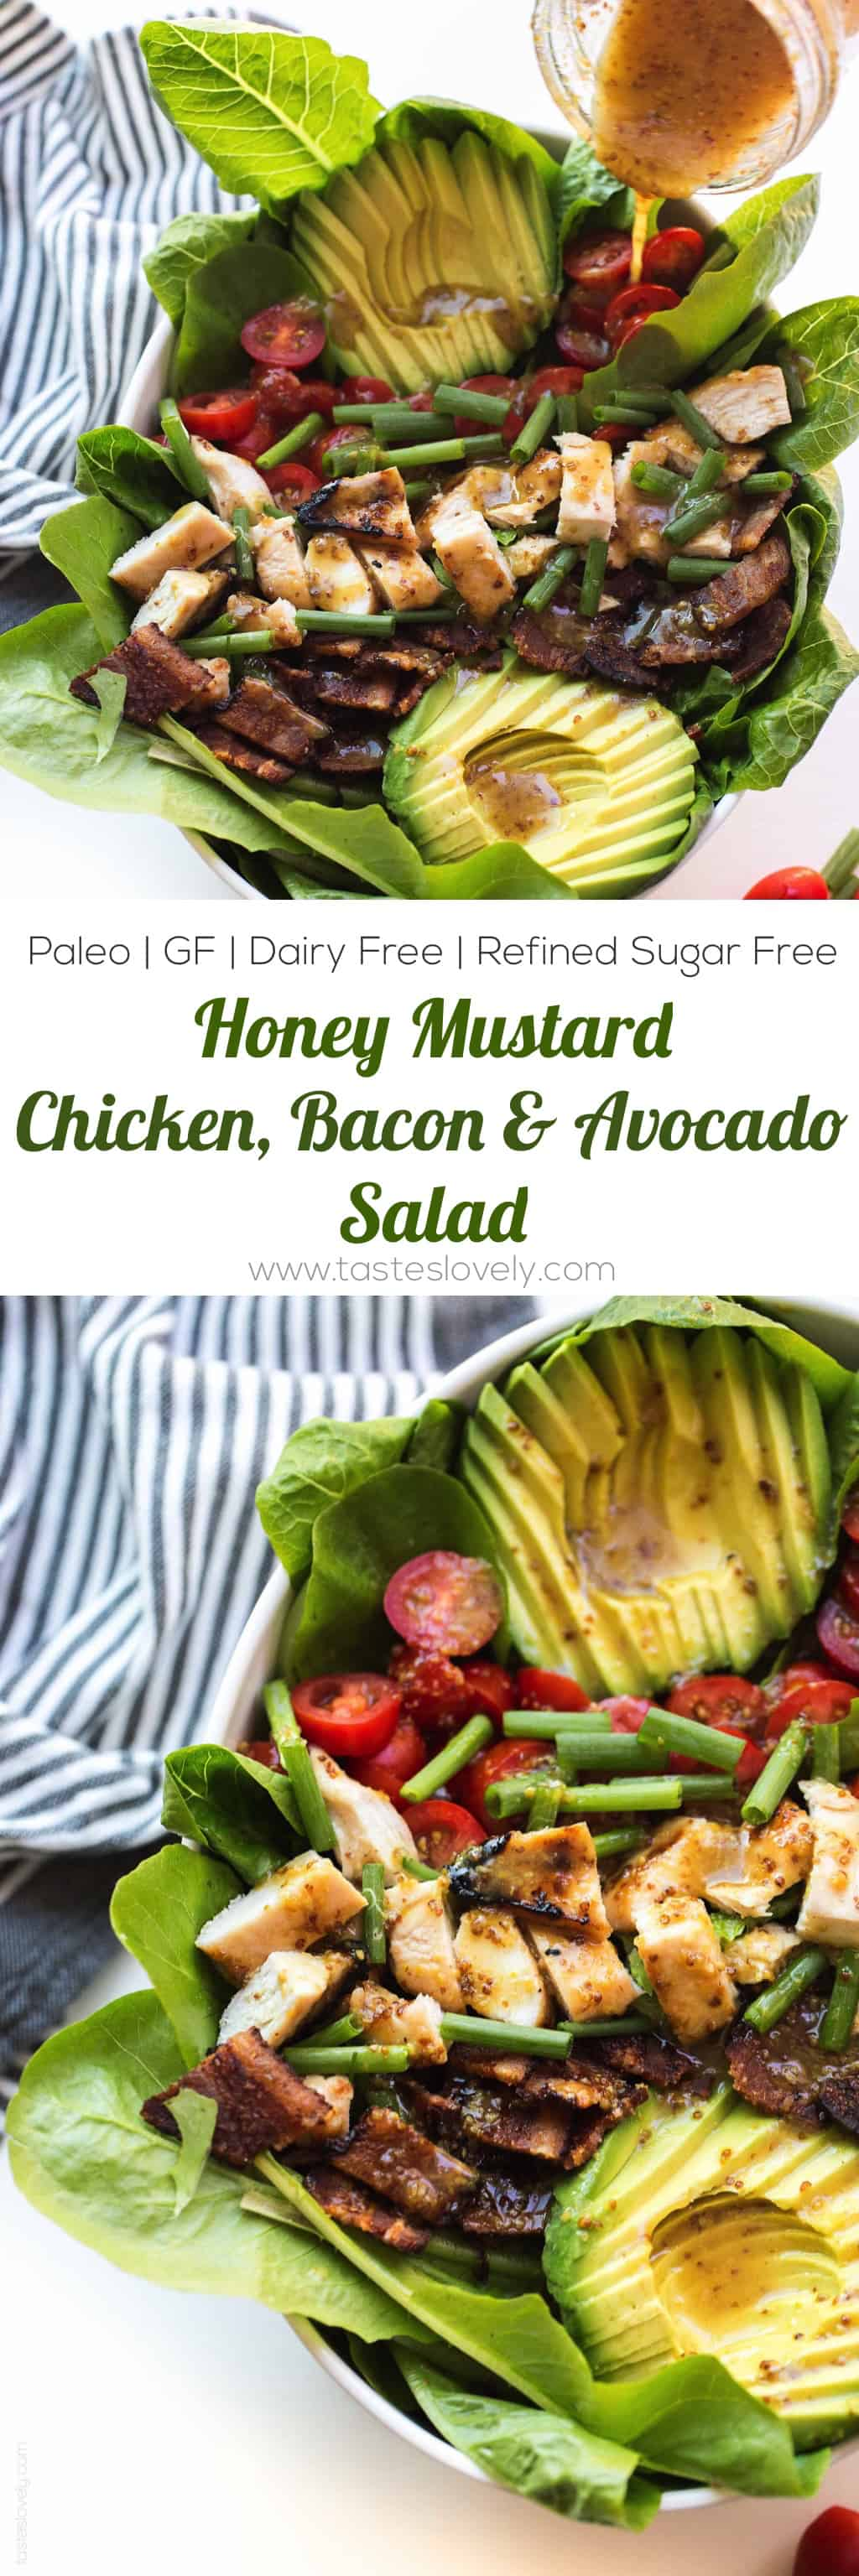 Paleo Honey Mustard Chicken, Bacon & Avocado Salad with tomatoes. A delicious and healthy summer dinner recipe that is paleo, gluten free, dairy free, refined sugar free.